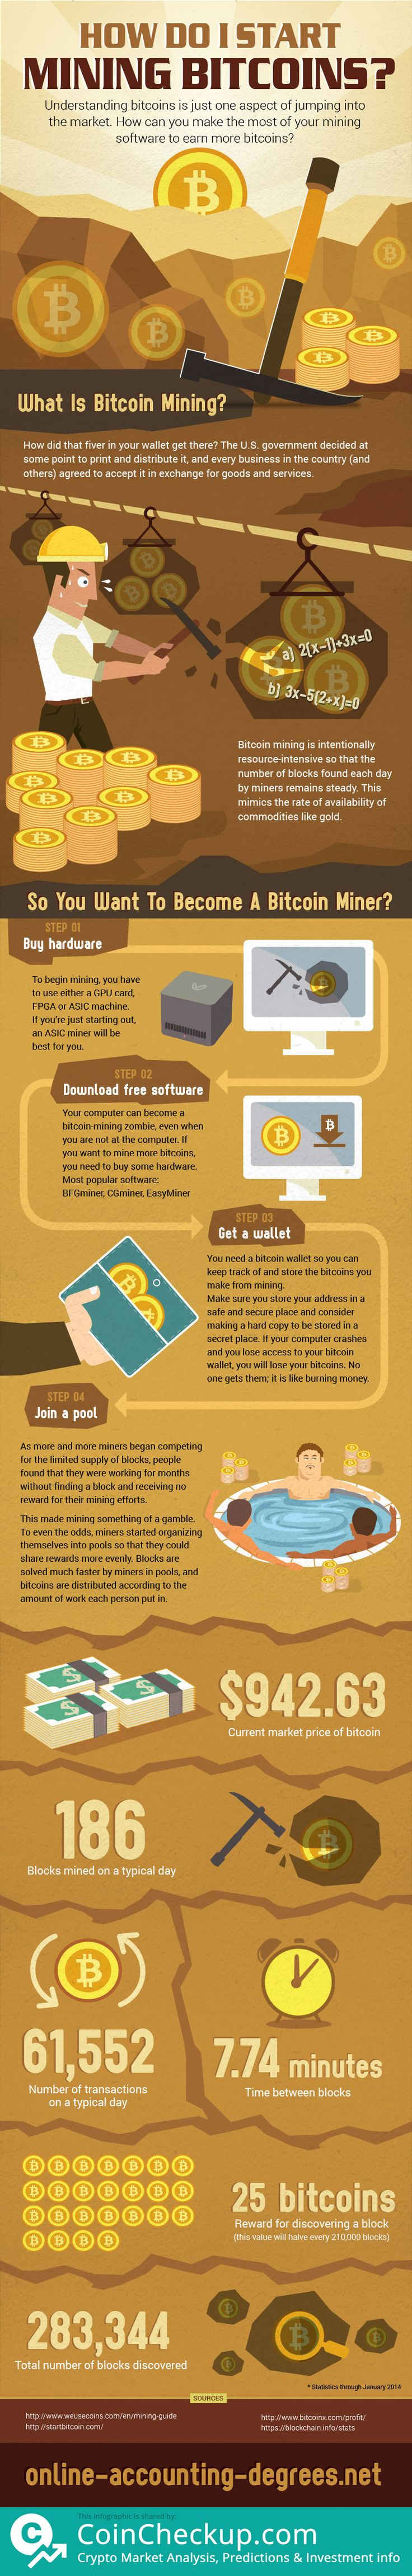 So how do I start mining bitcoins? By CoinCheckup The